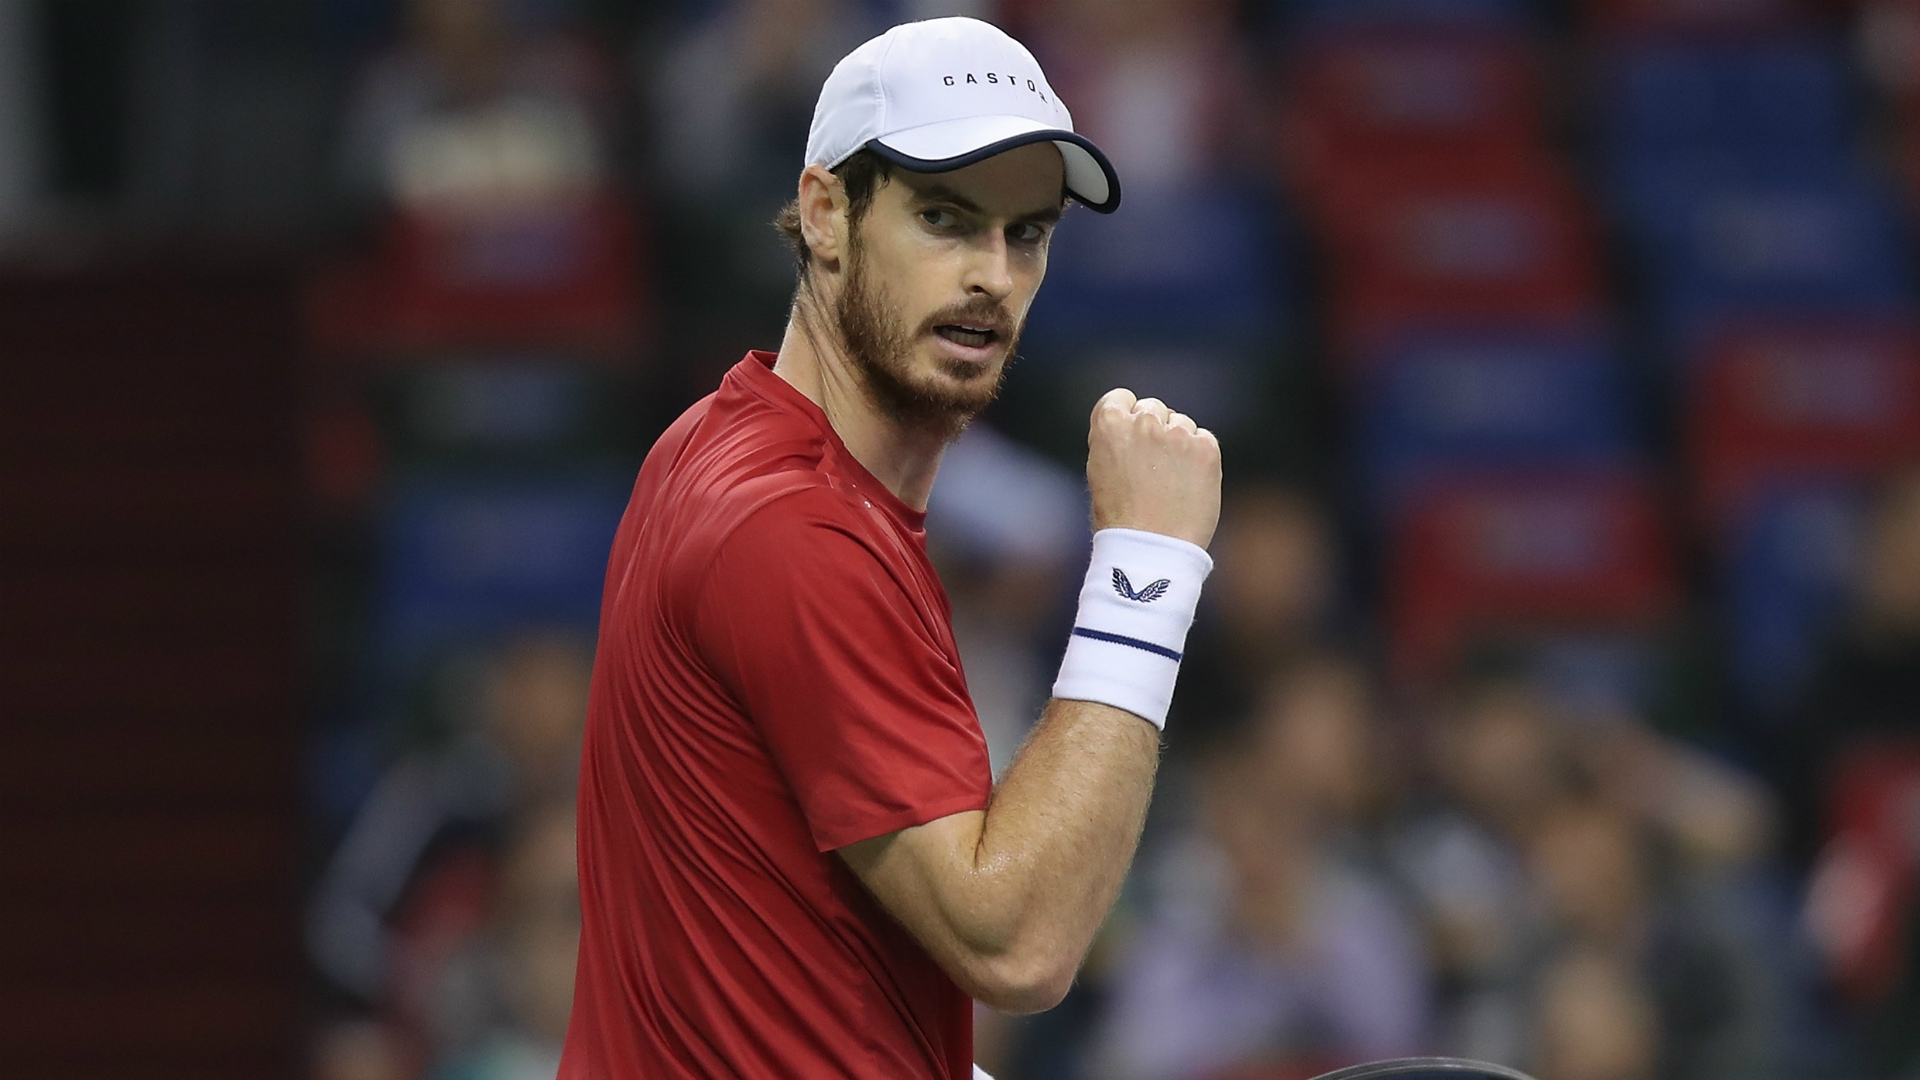 Andy Murray: Grand slams could be my best chance of success